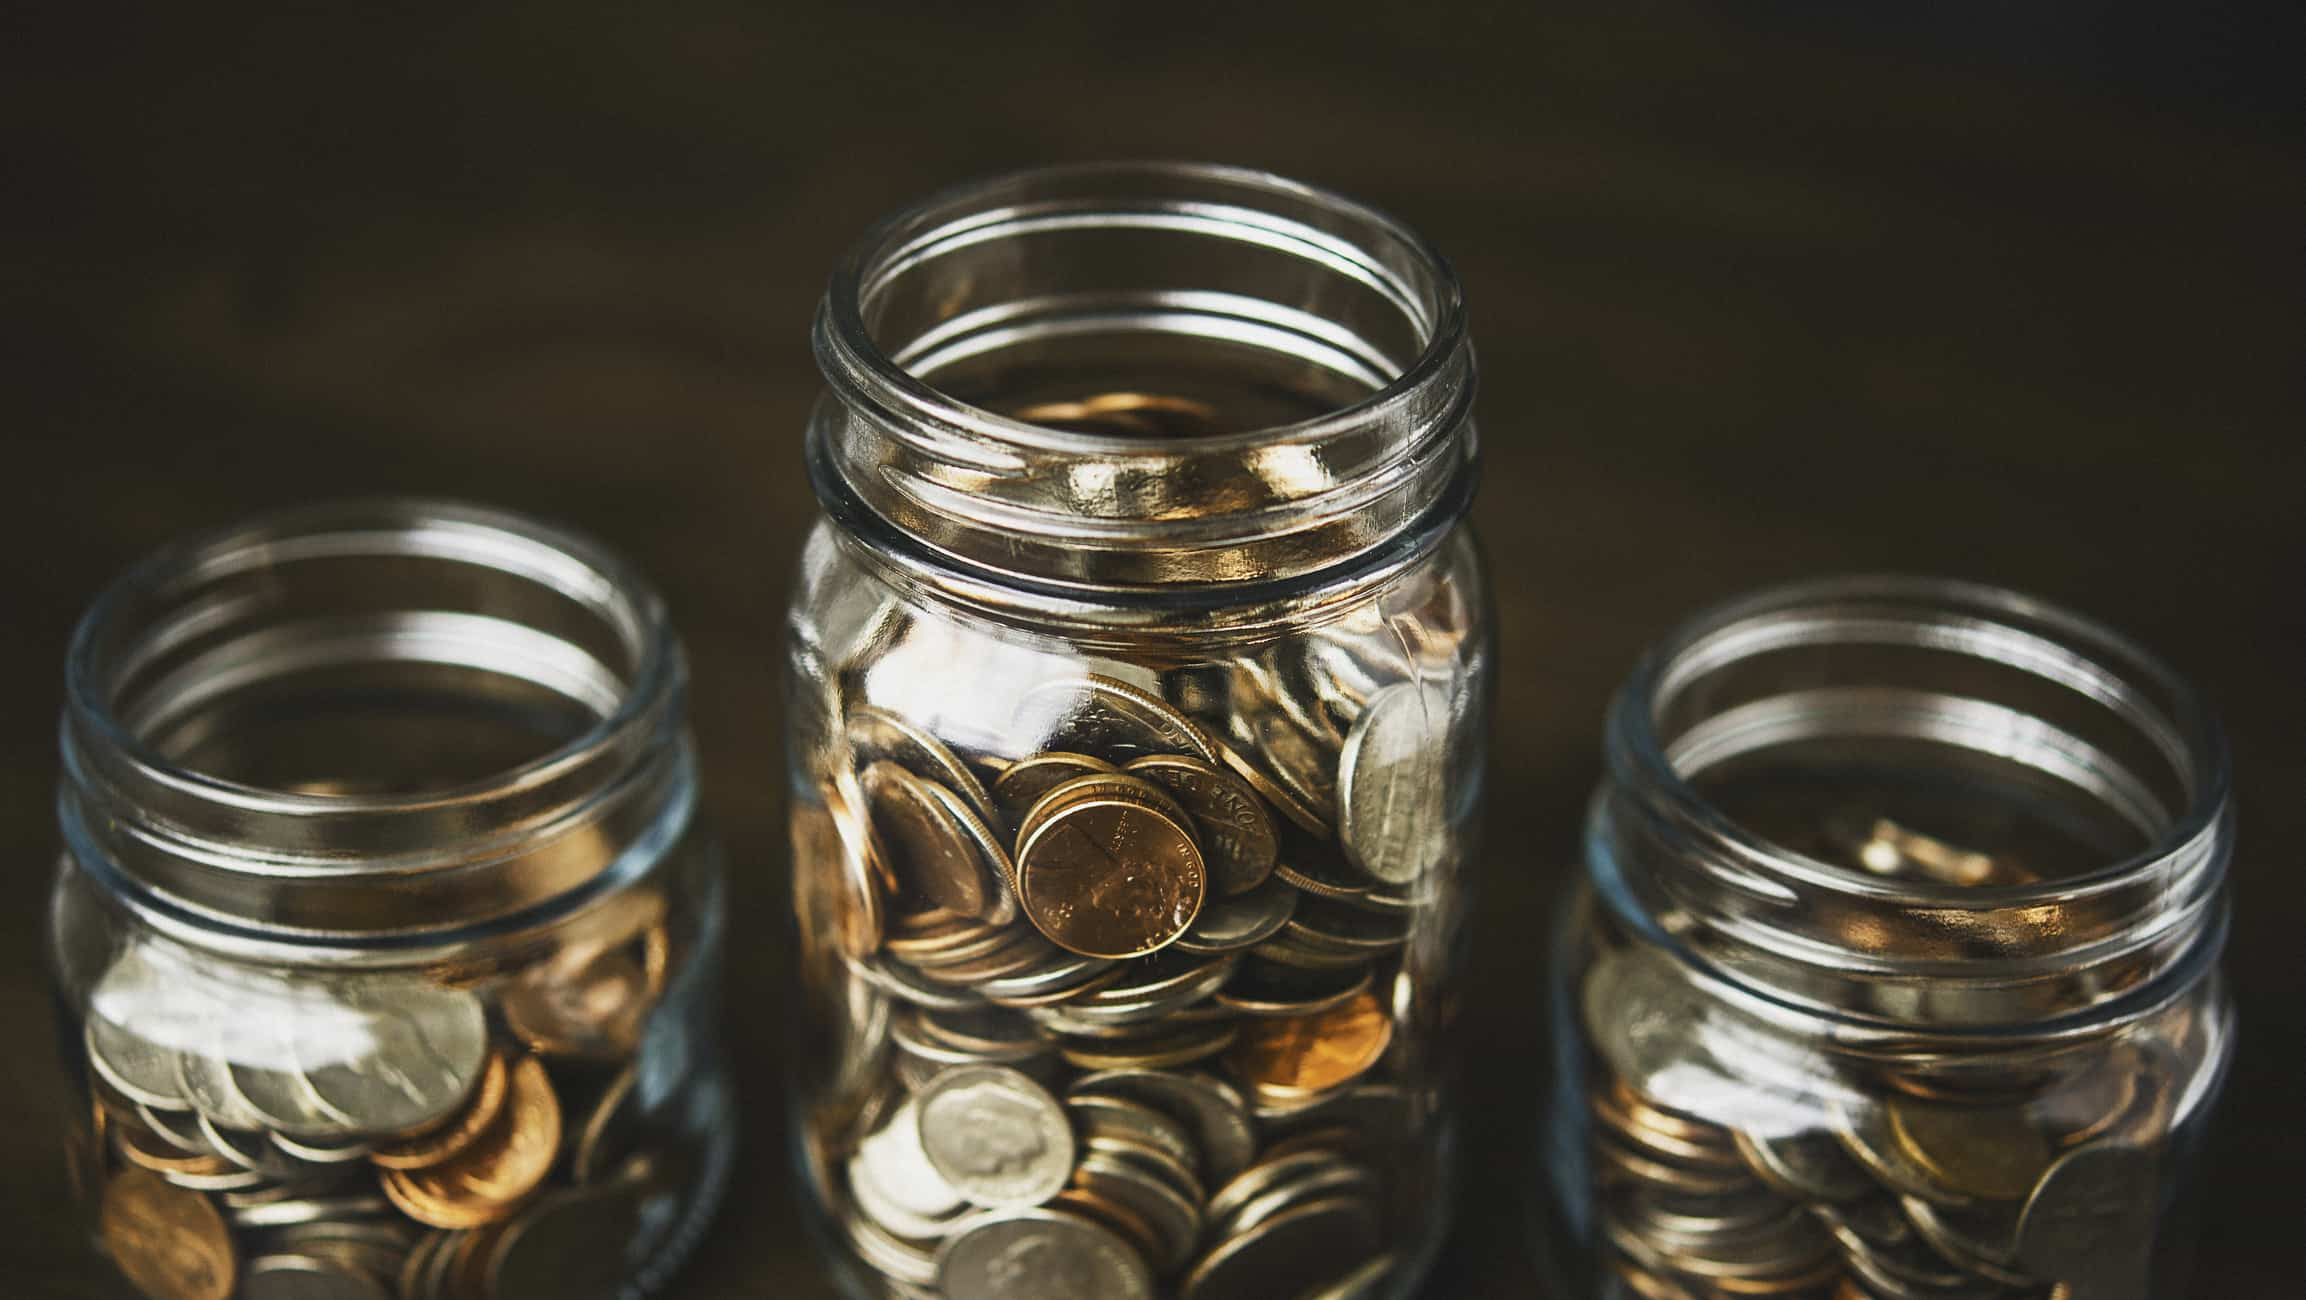 three jars full of money, coins